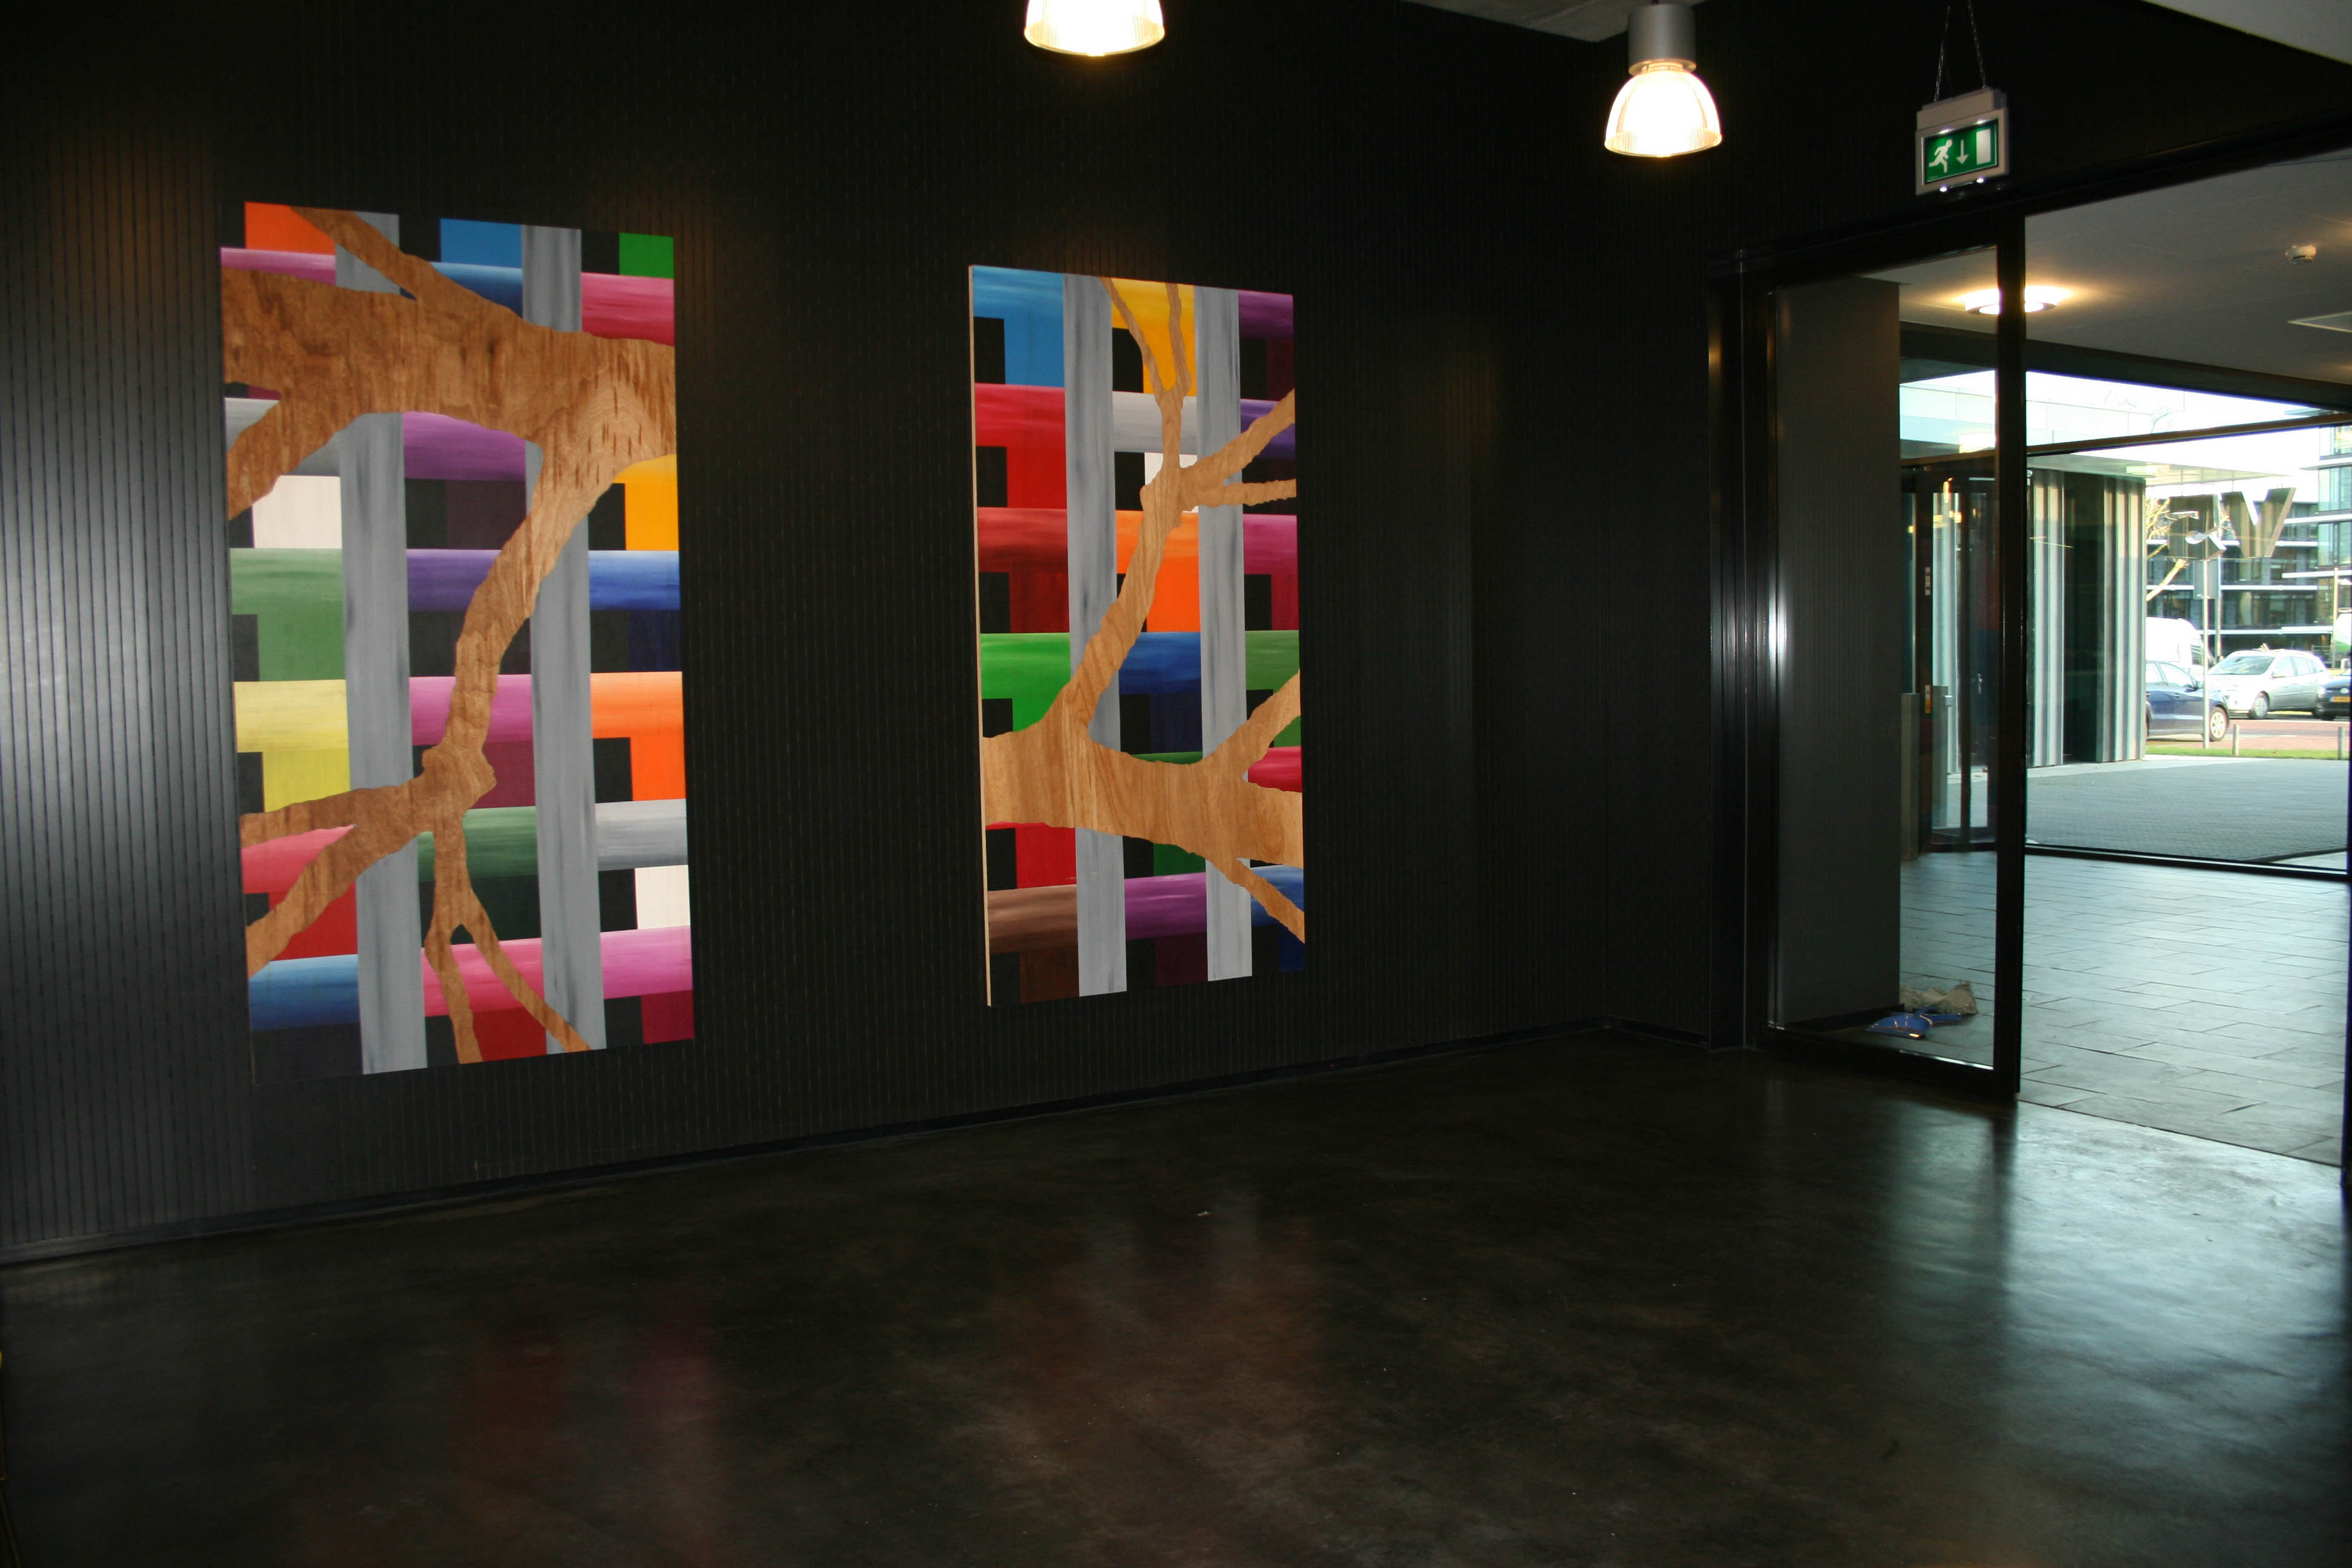 11  Ministry of Defence  Title Overvecht 9 & 10  230 x  120 cm 2x  Astrid MG Rubie